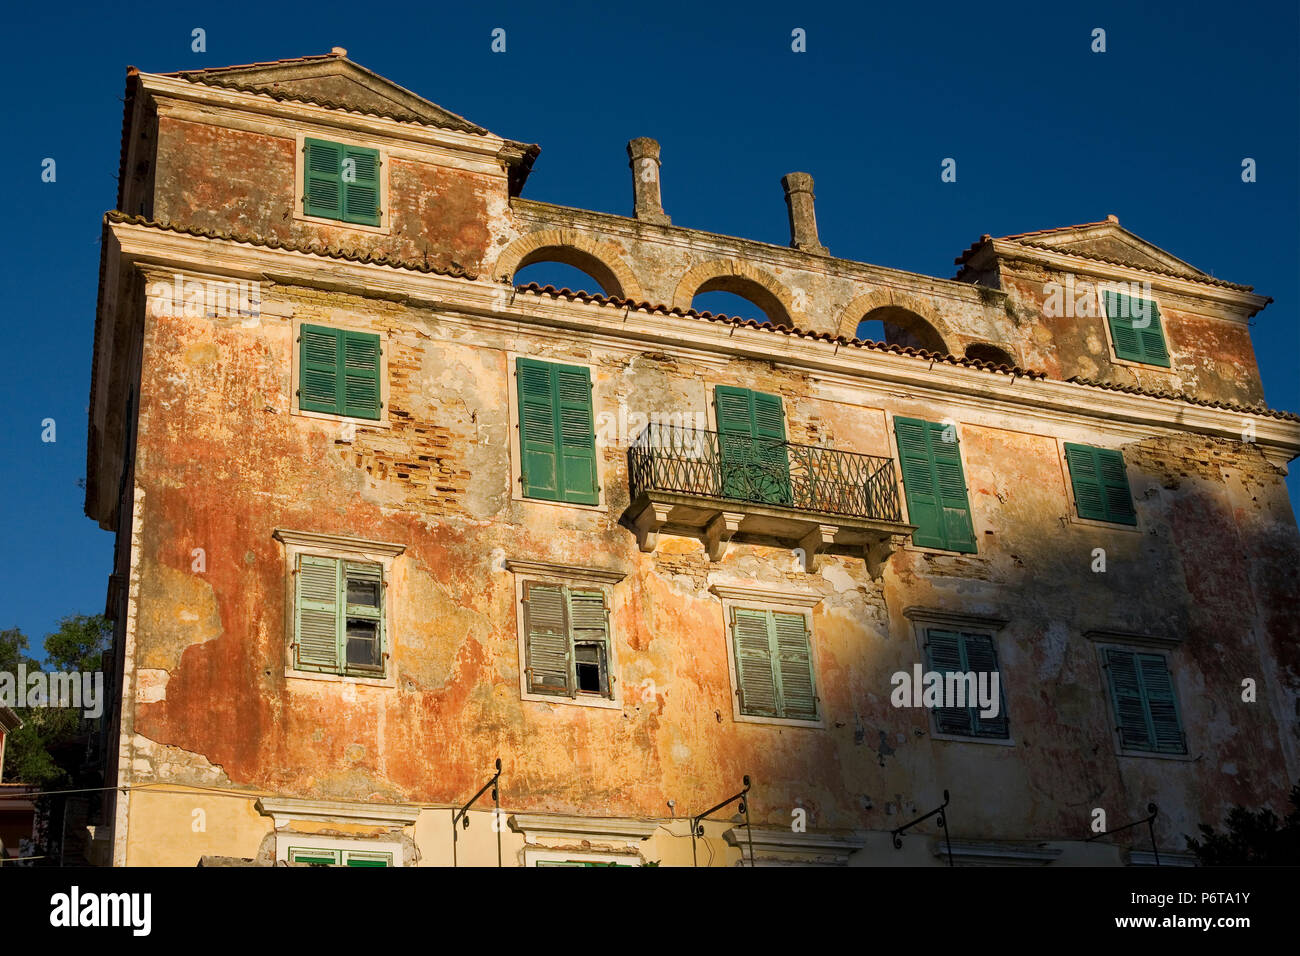 The decaying but still imposing remains of the Britsh Governor's Residence, Gaios, Paxos, Greece - Stock Image